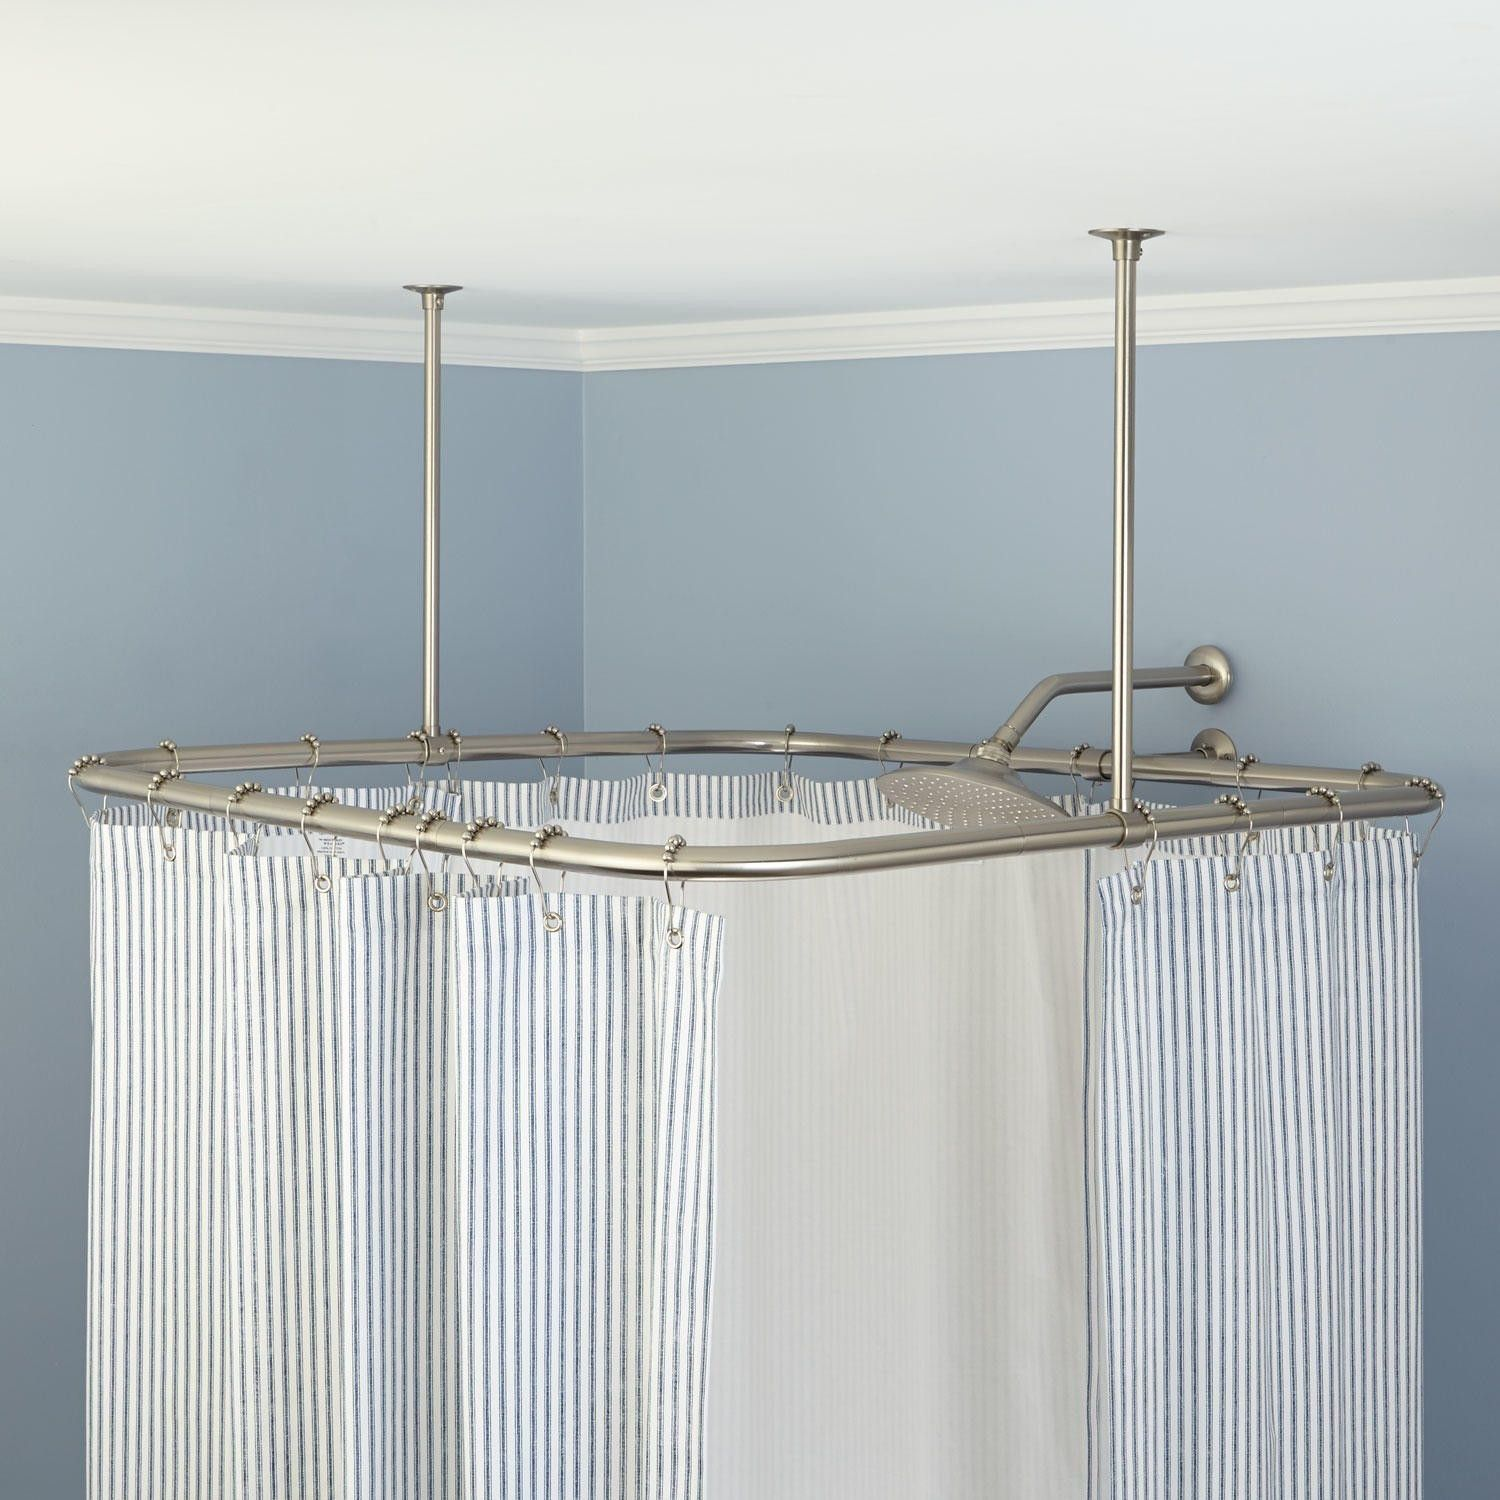 Square Ceiling Mounted Curtain Rods Shower Curtain Rods